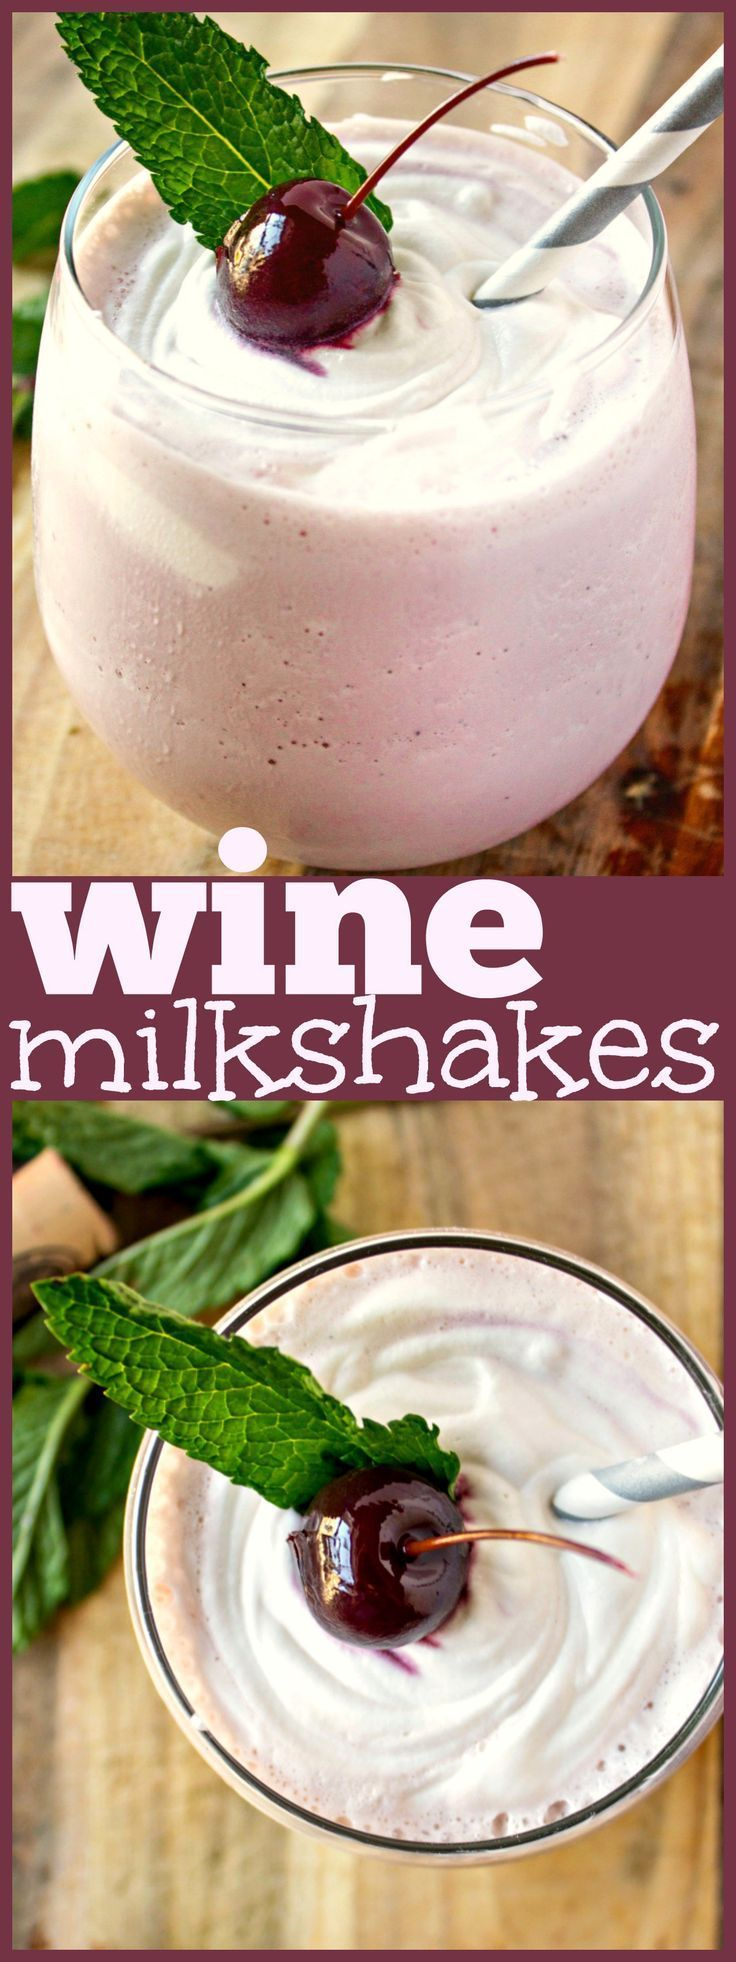 Wine-Milkshakes. With just two ingredients, this is the easiest boozy drink you will ever make. Just blend dessert wine and vanilla ice cream and you are on your way to having the best adult milkshake you can imagine!